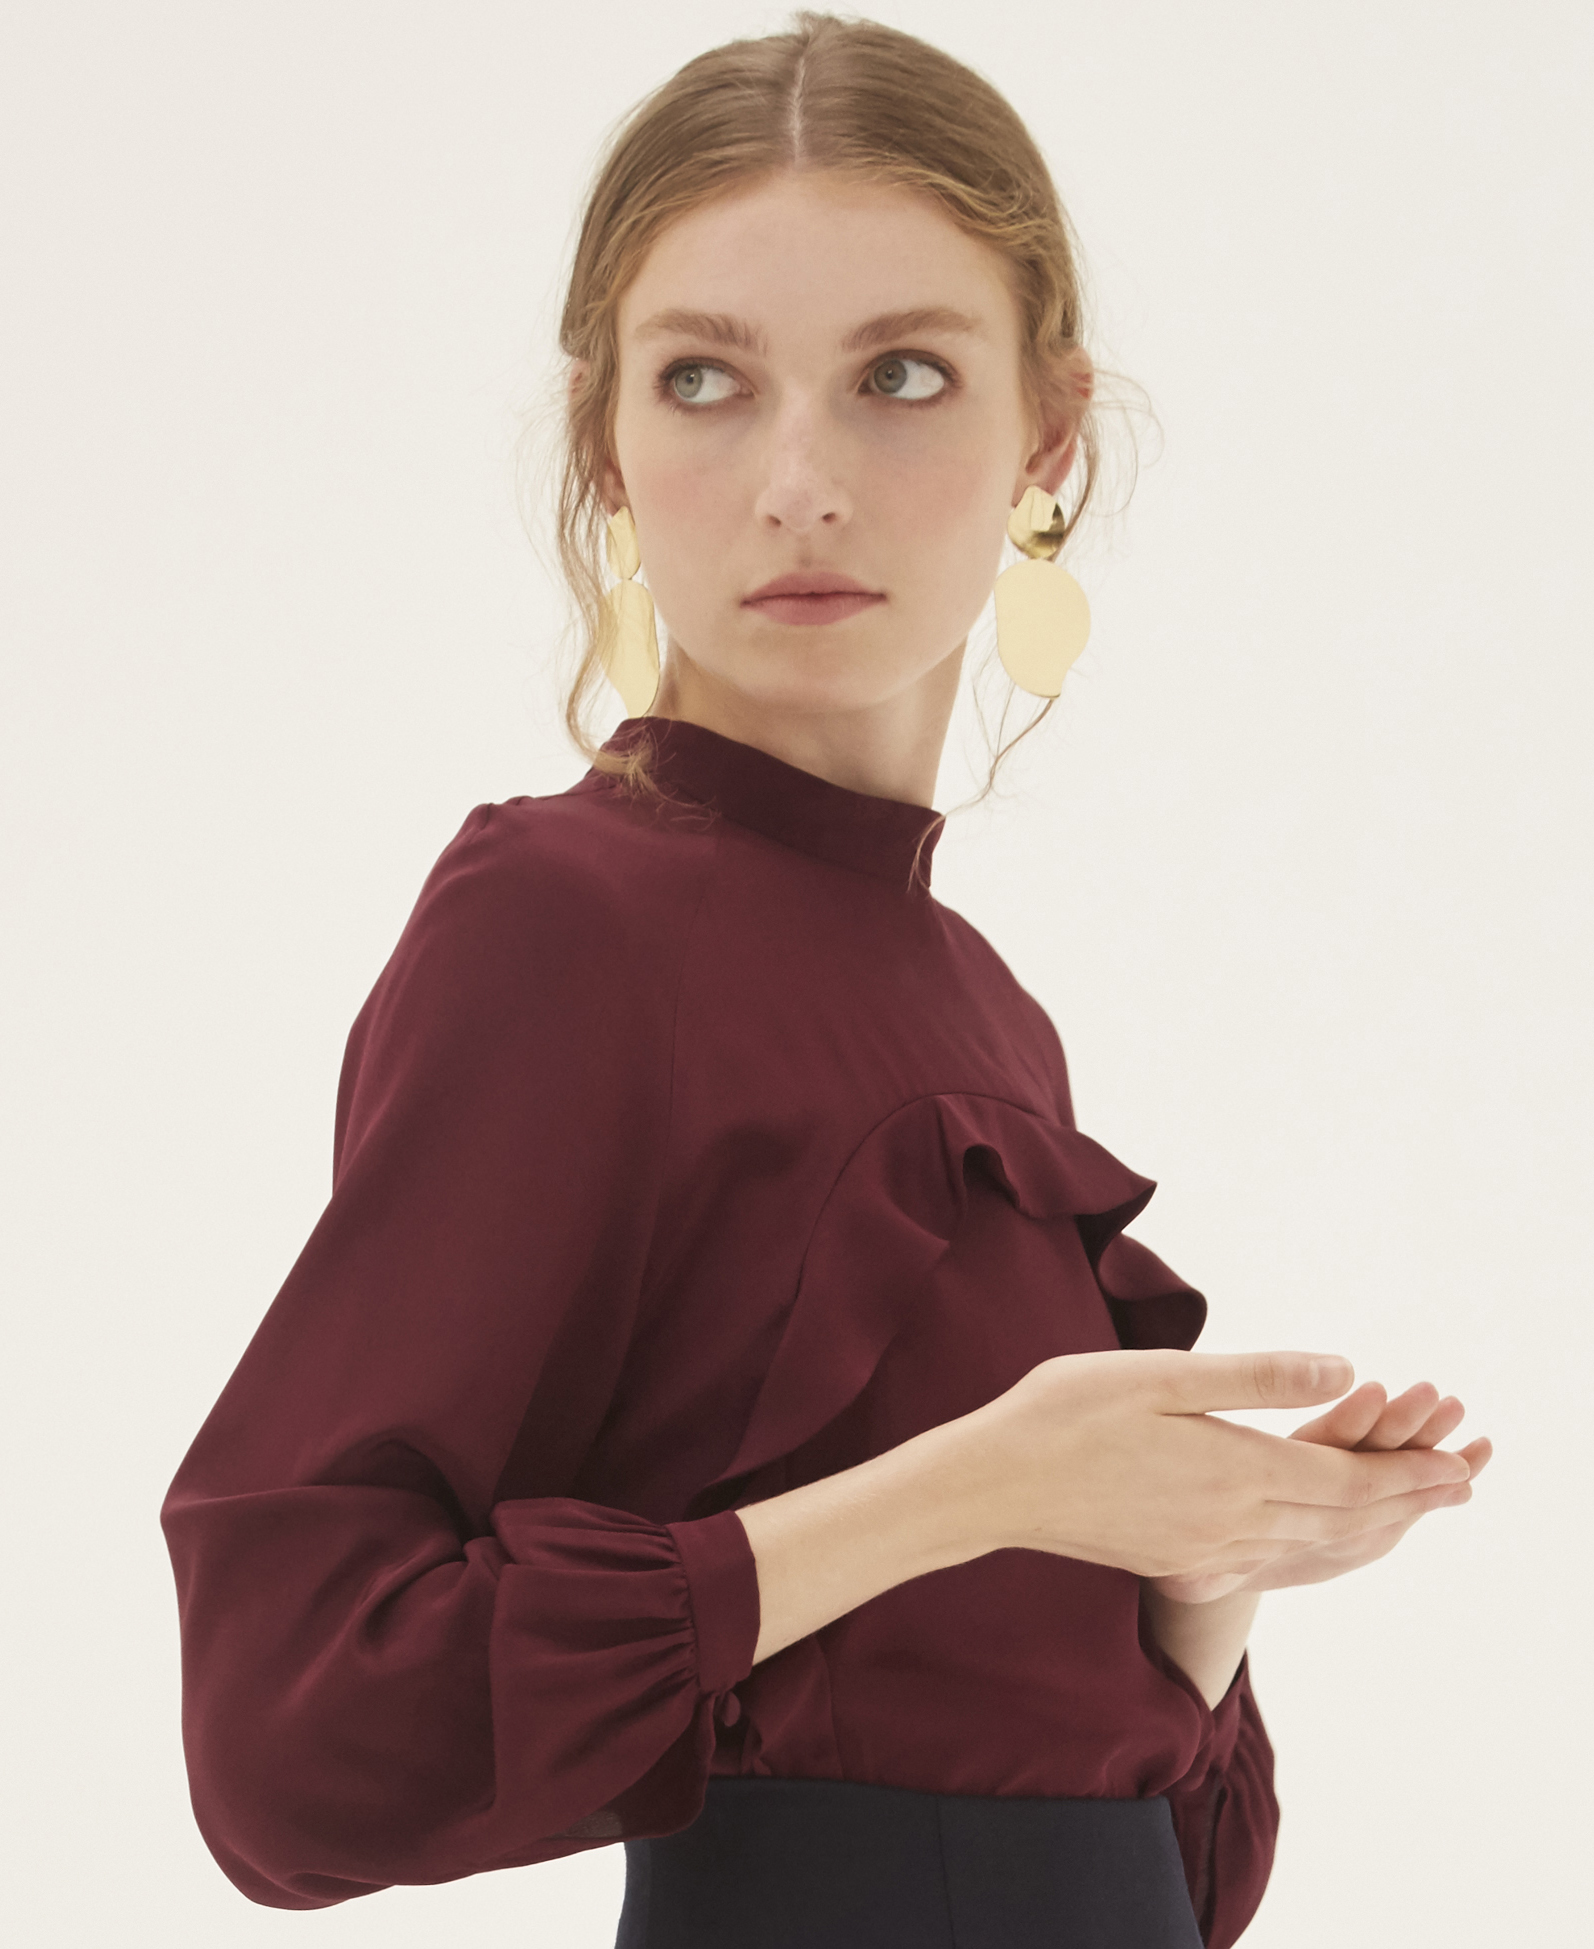 Angelica Blouse by Bozena Jankowska on curated-crowd.com